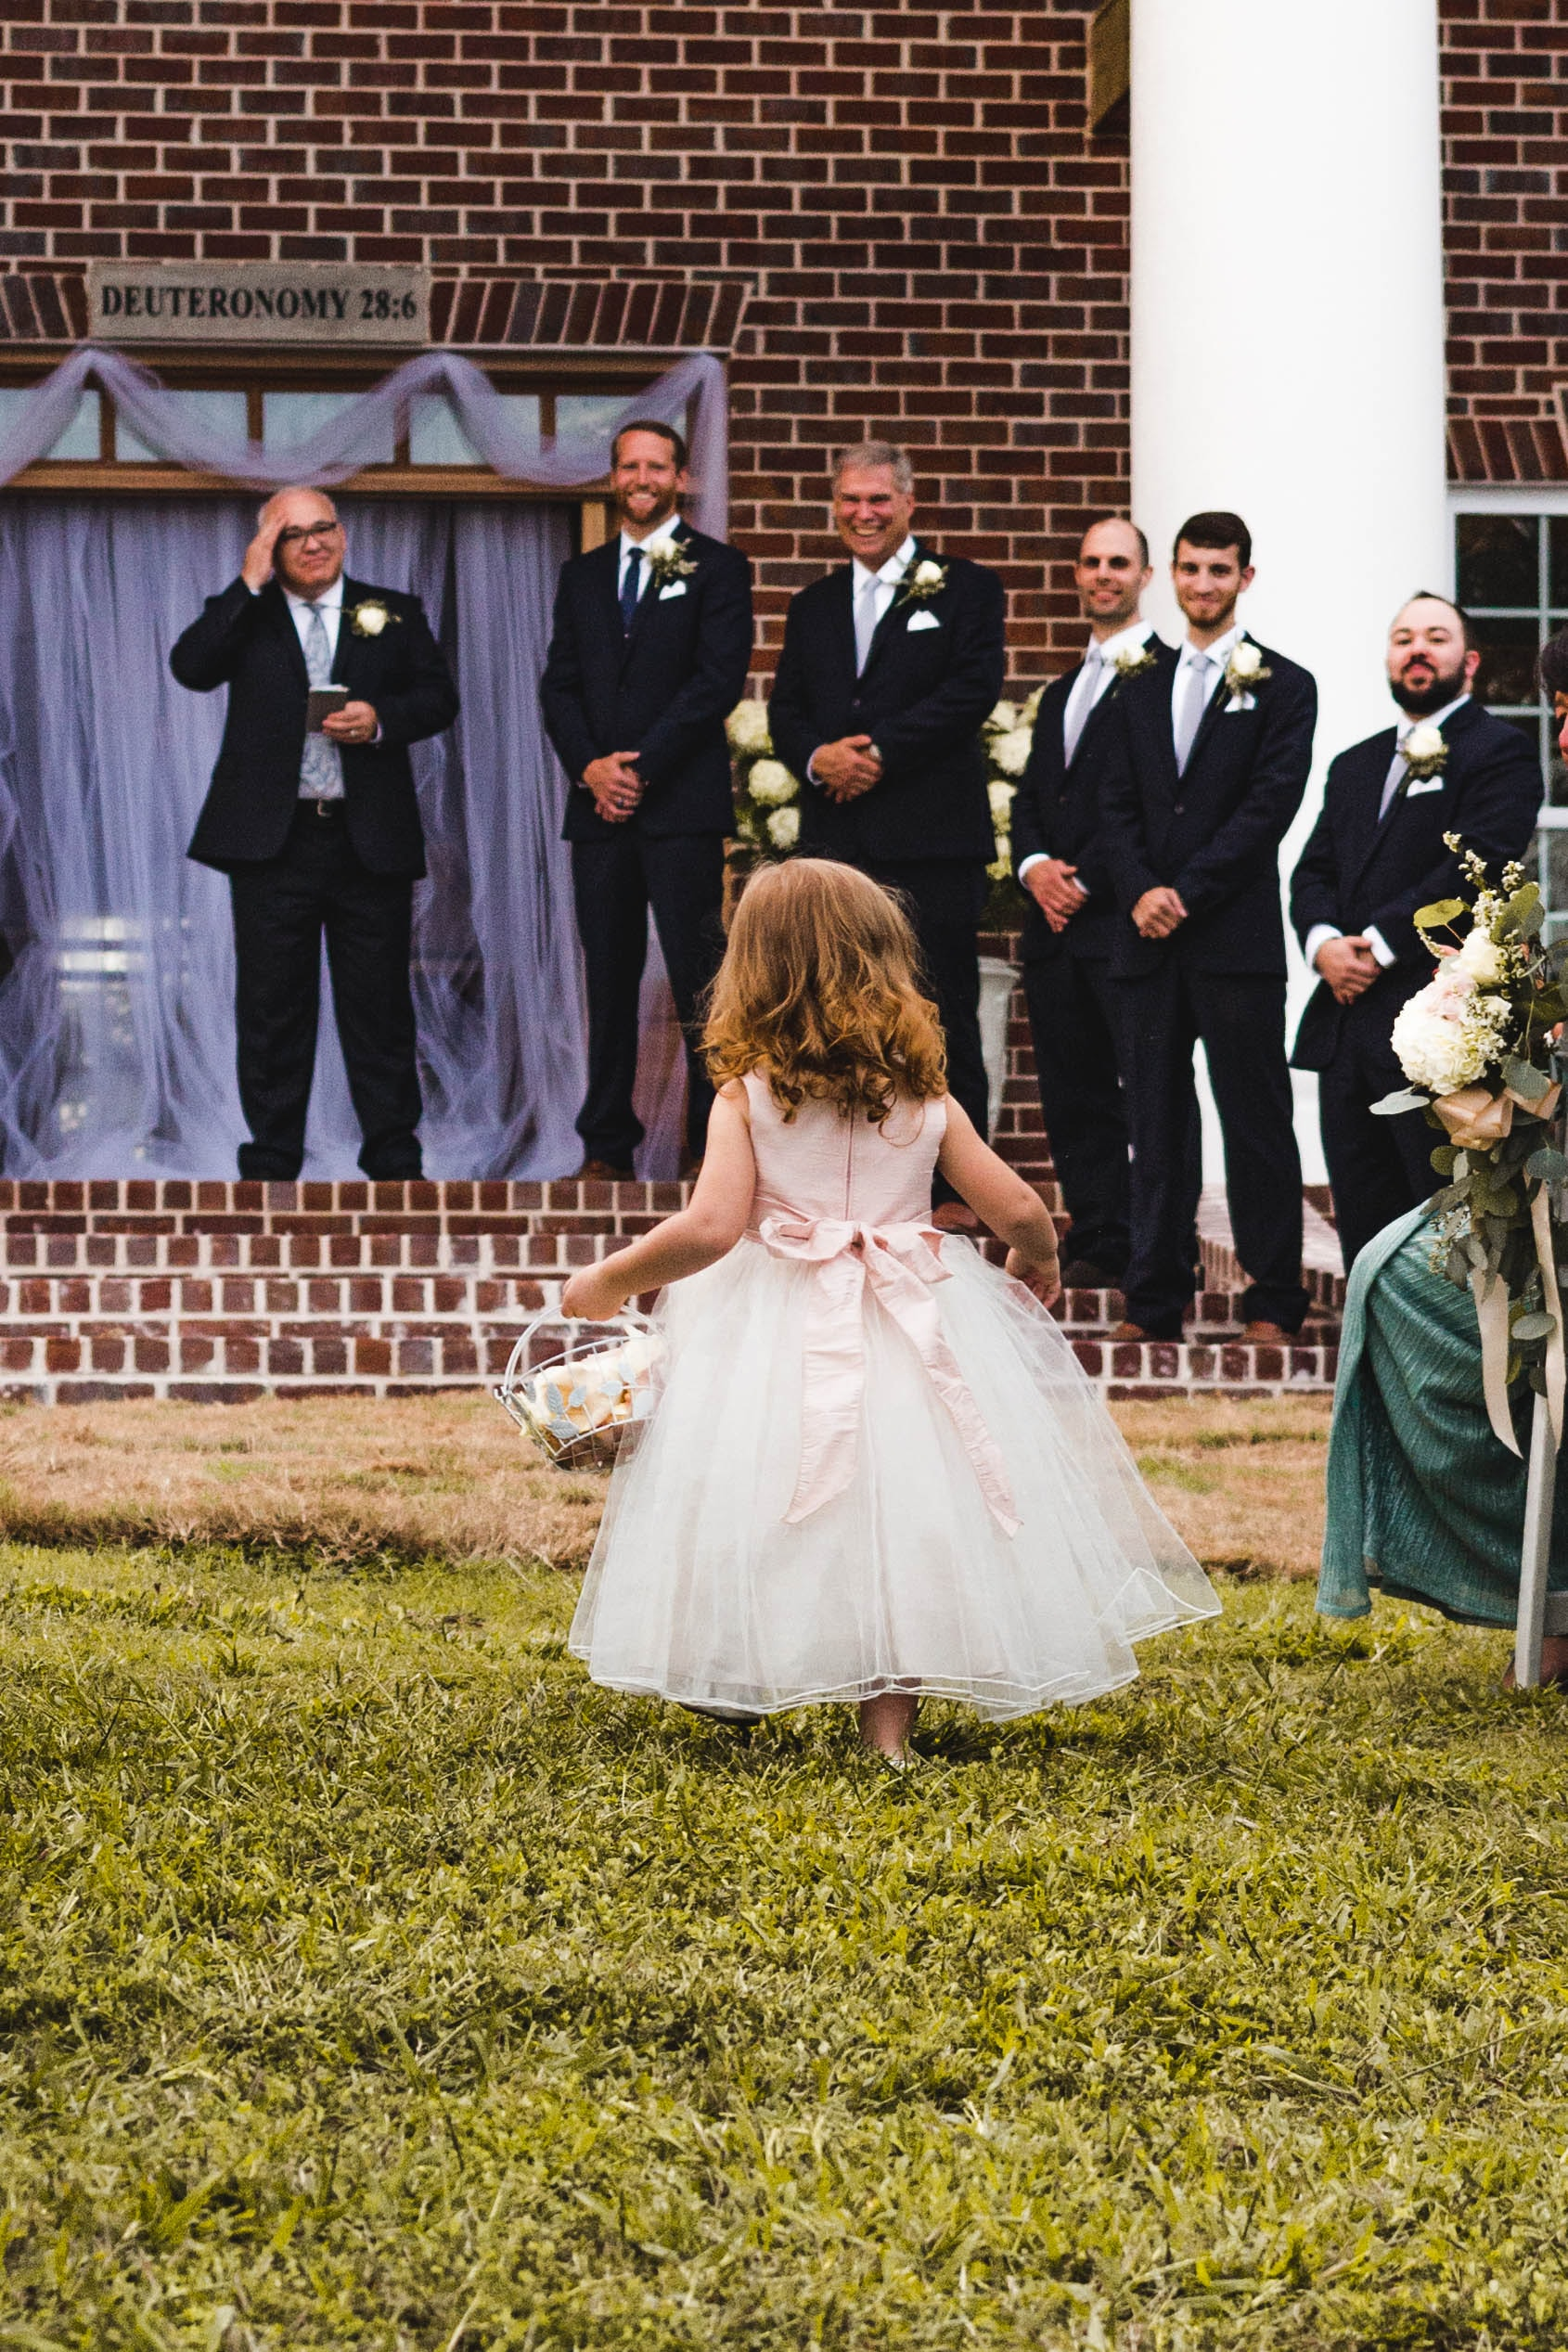 10 Flower Girl Dresses To Match Your Rustic Wedding Theme